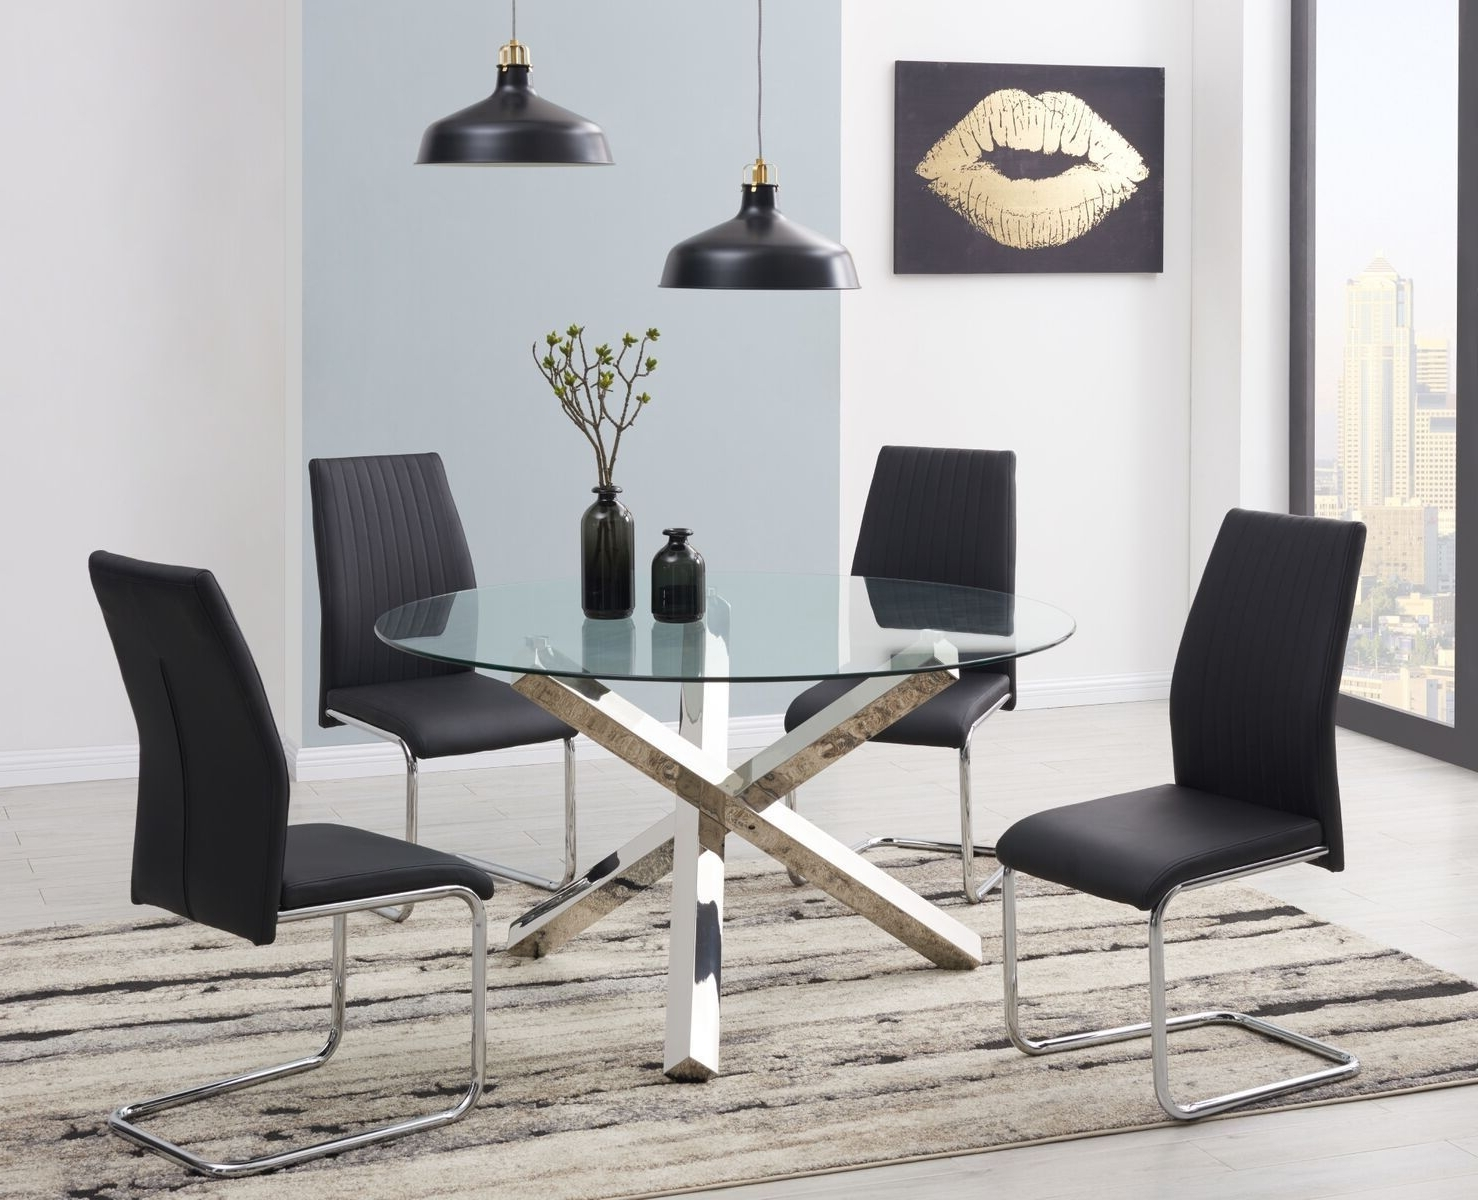 Glass 6 Seater Dining Tables In Favorite Details About Vogue Large Round Chrome Clear Glass 4 6 Seater Dining Table  And Leather Chairs (View 17 of 25)